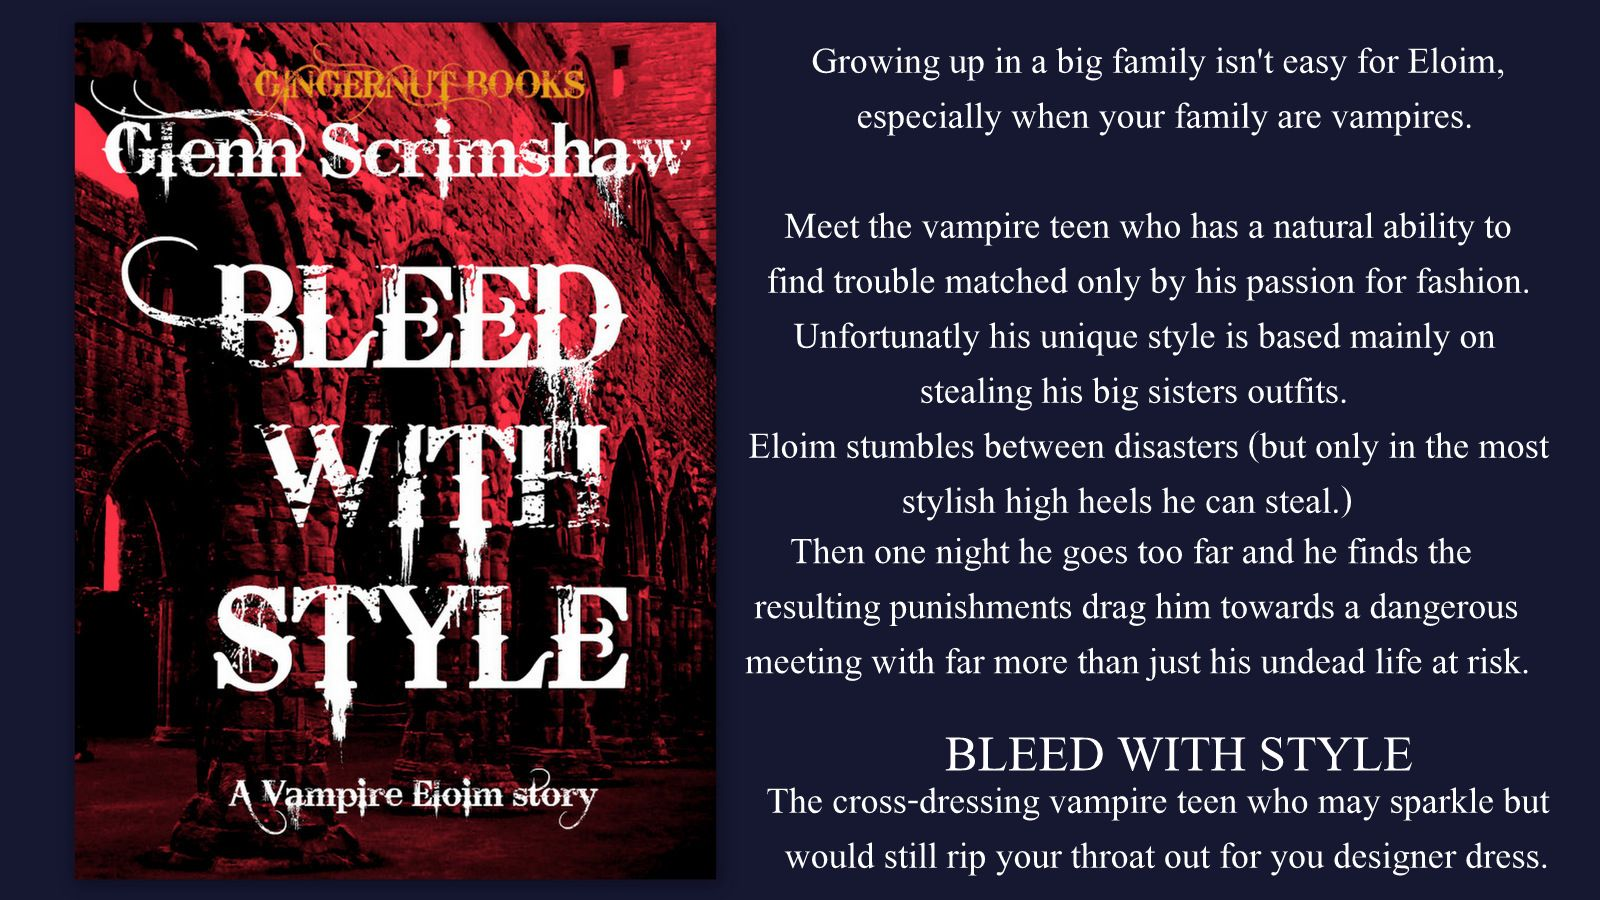 Bleed With Style,the first of the vampire Eloim short stories